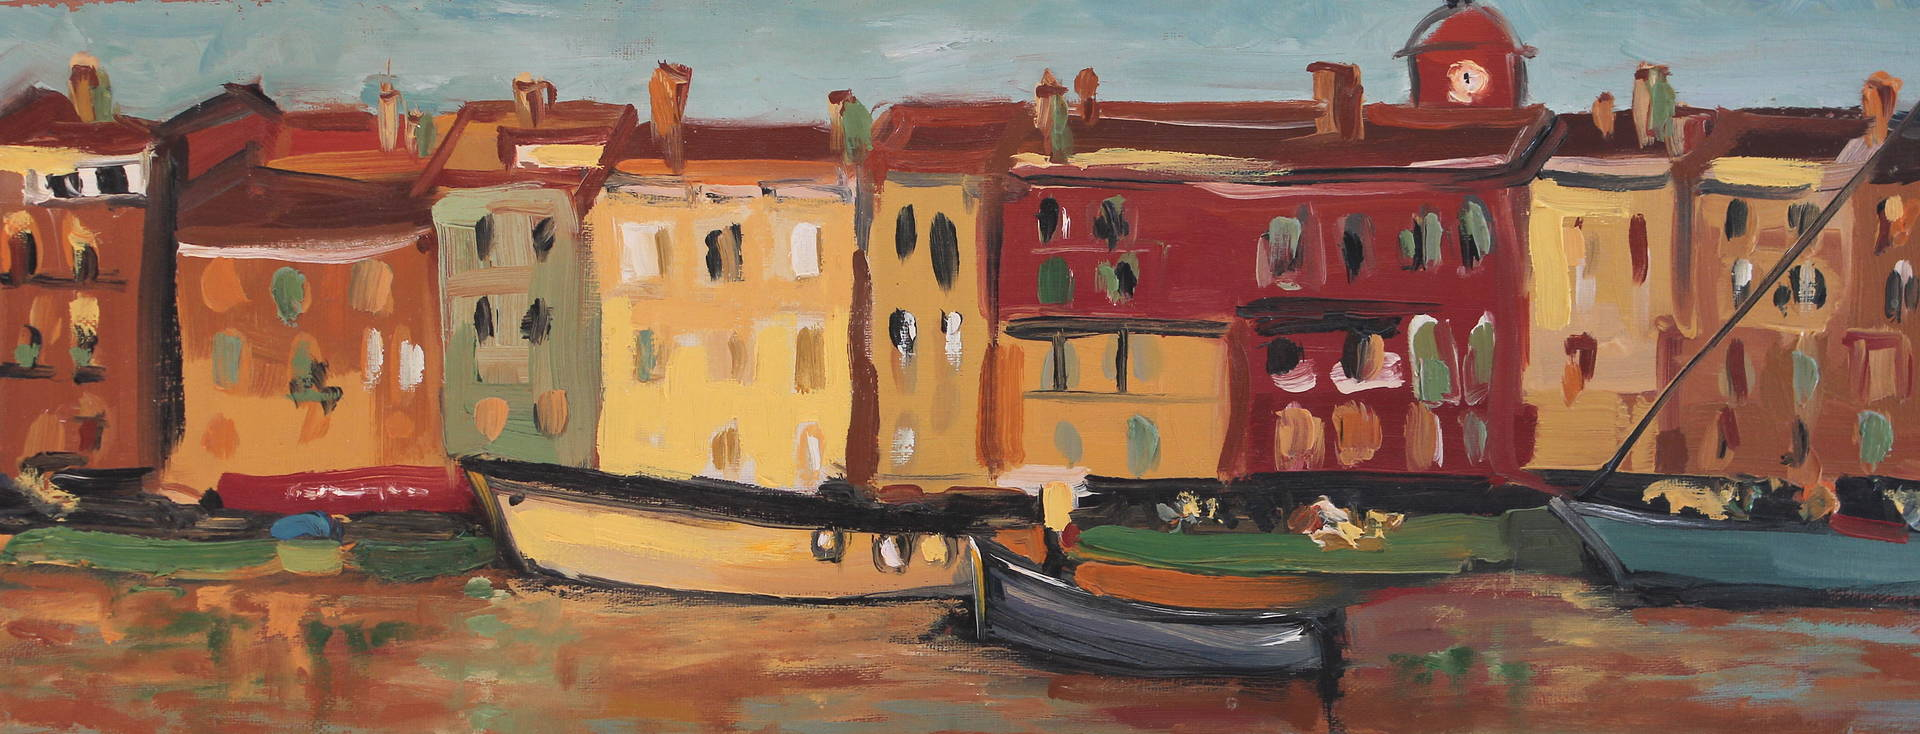 Oil painting St. Tropez by Lisa Printz